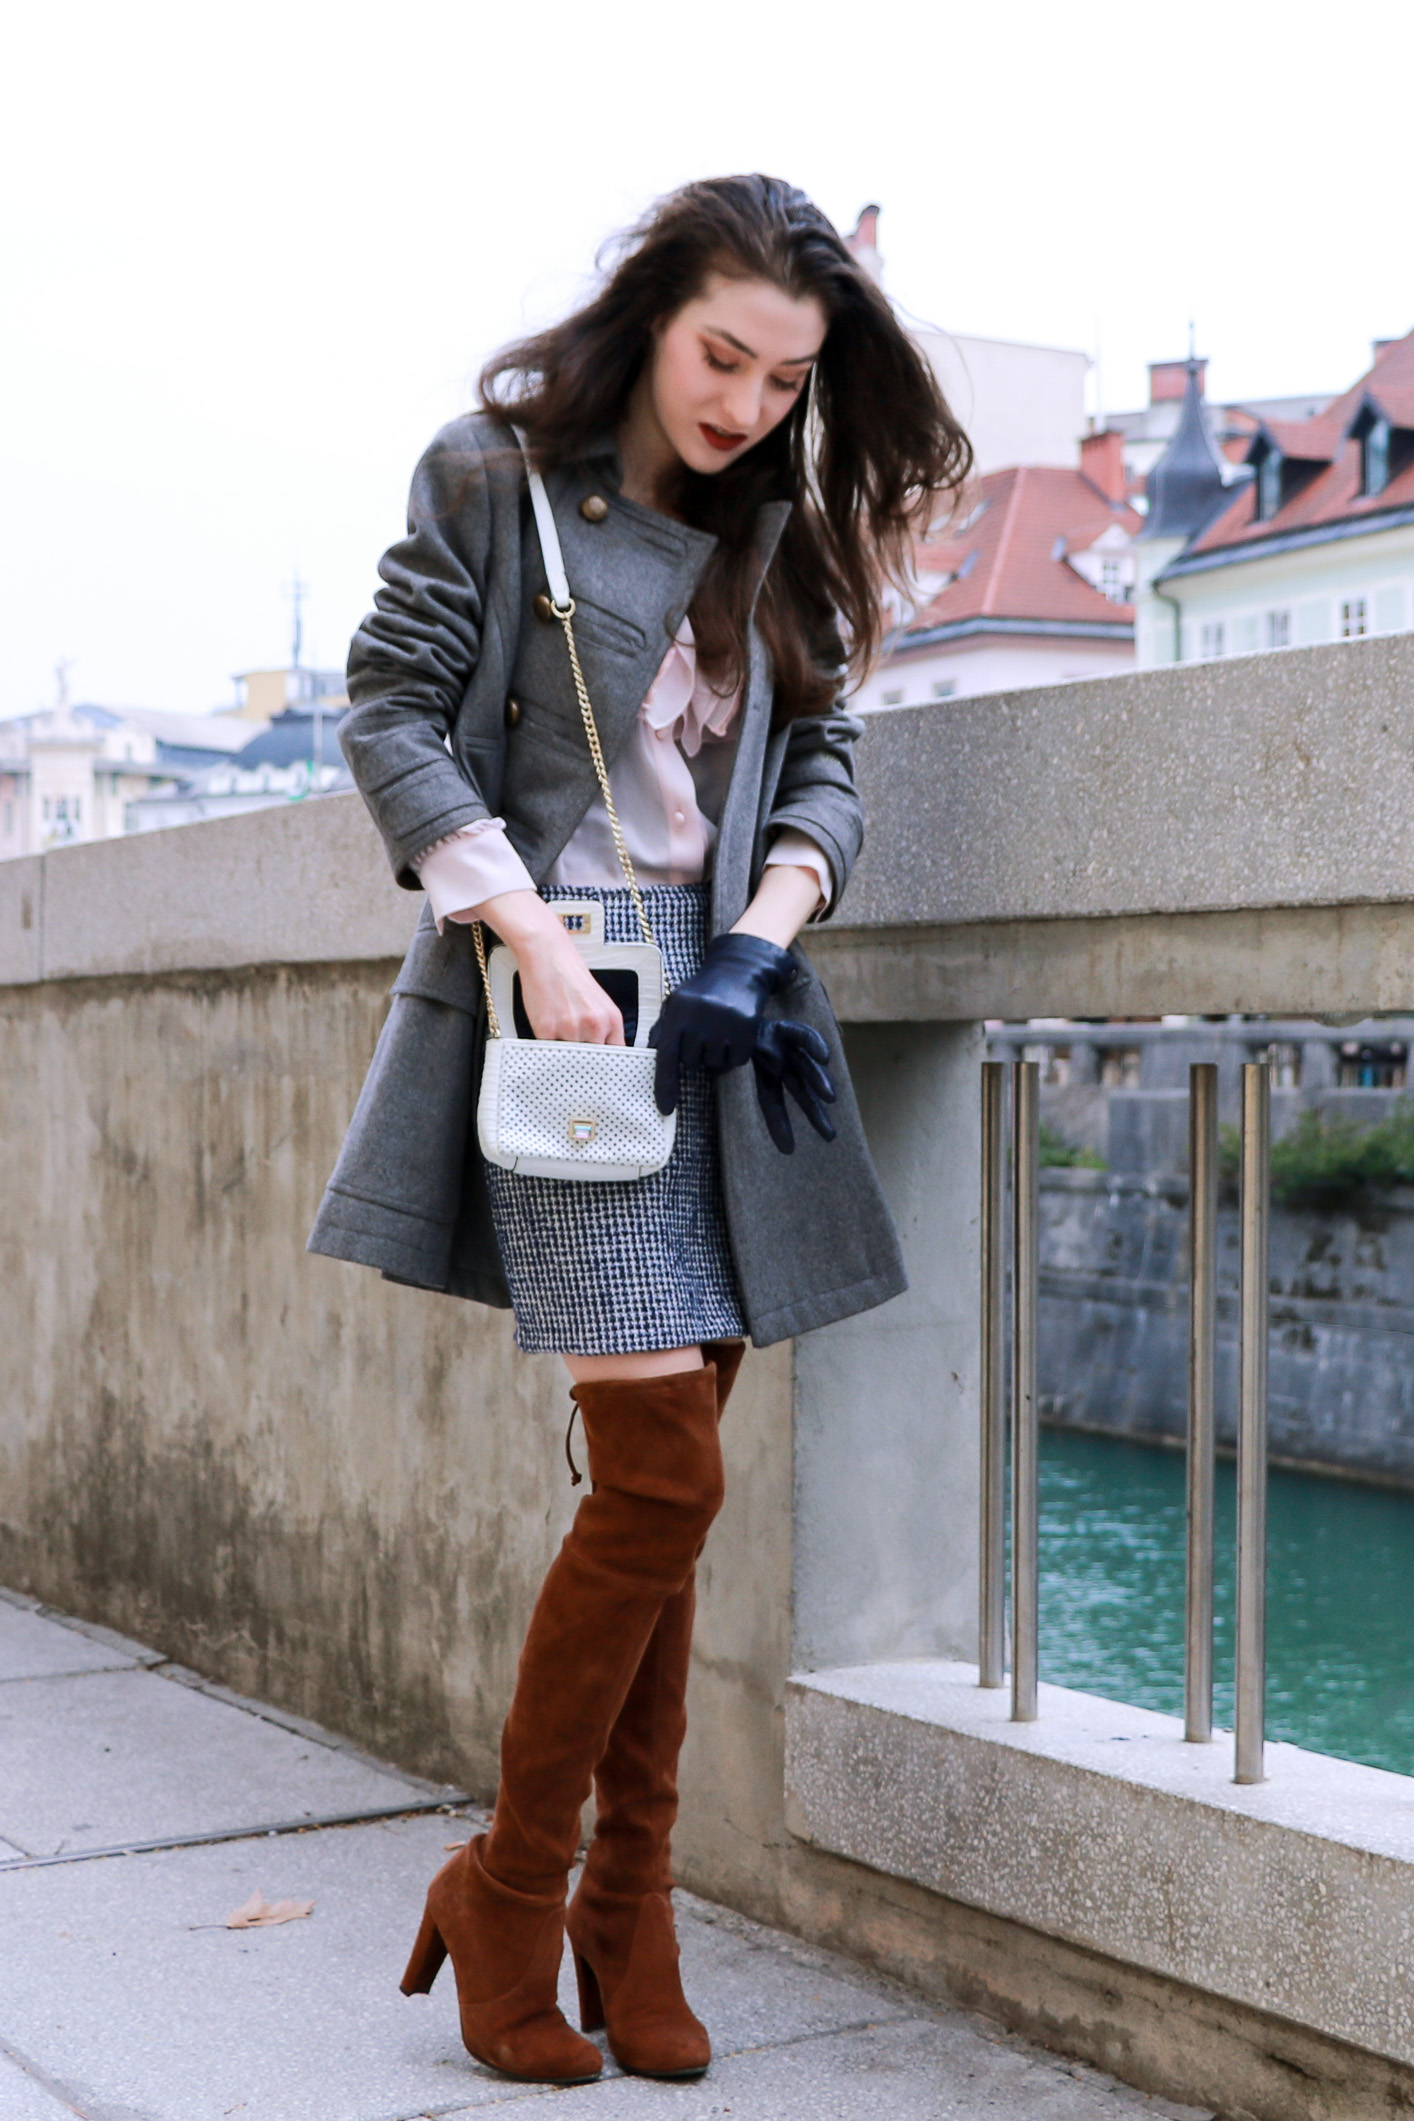 Fashion blogger Veronika Lipar of Brunette From Wall Street sharing list of 6 things you should have in your small bag